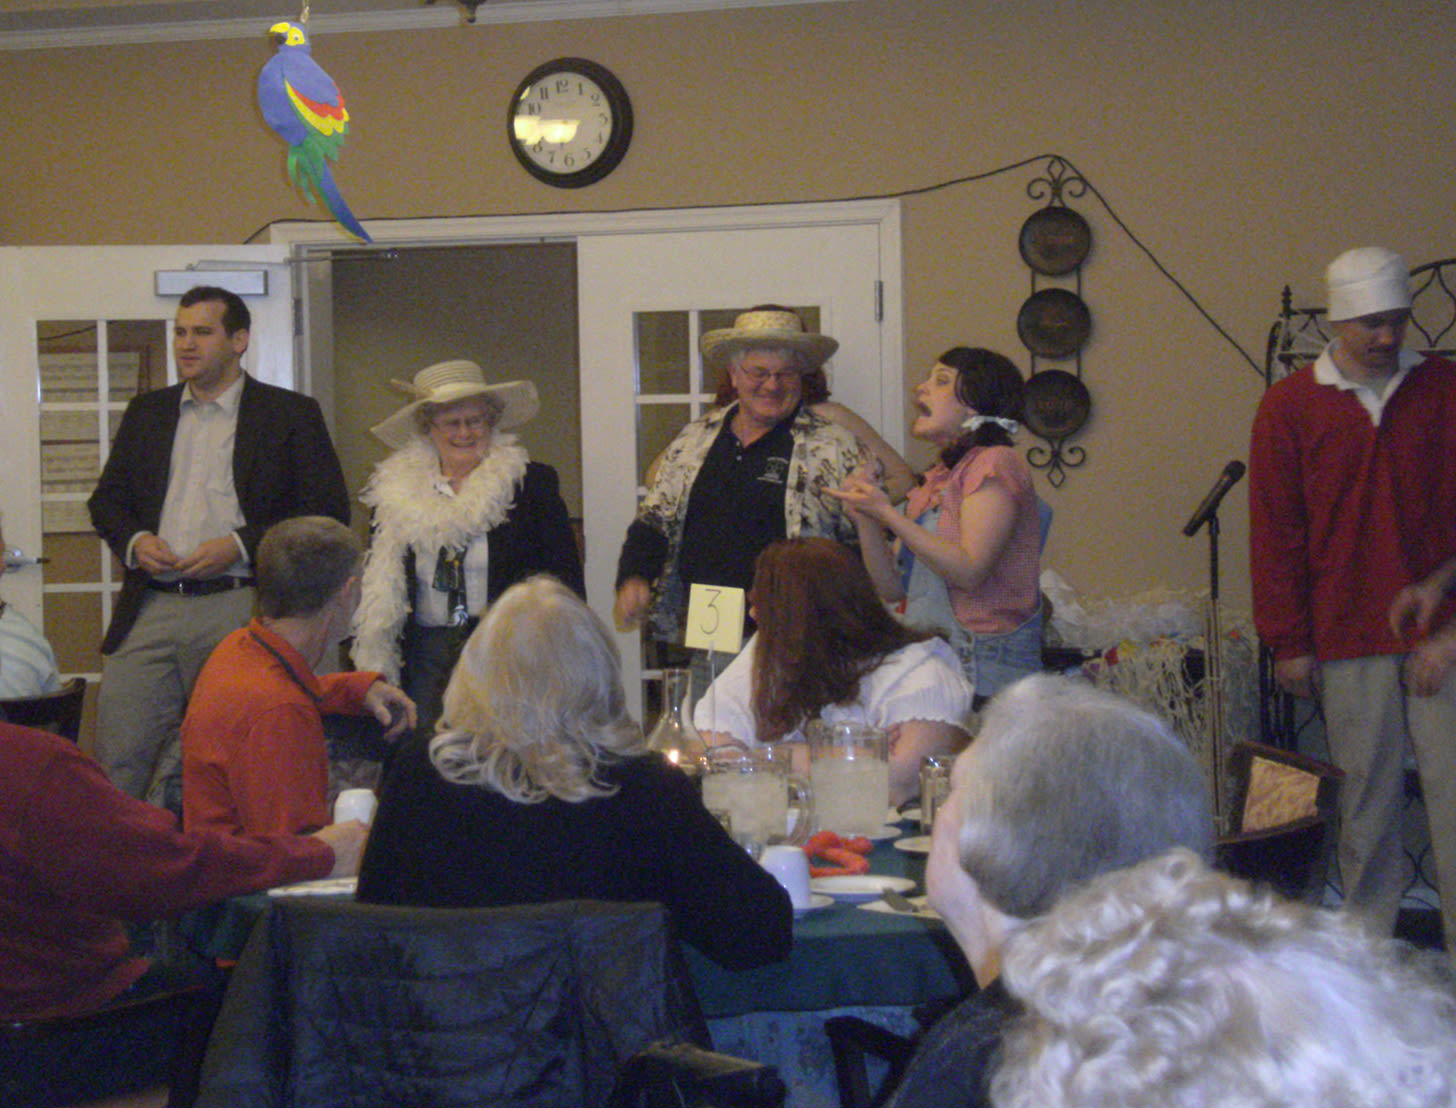 Residents playing a murder mystery game at Traditions of Hershey in Palmyra, Pennsylvania